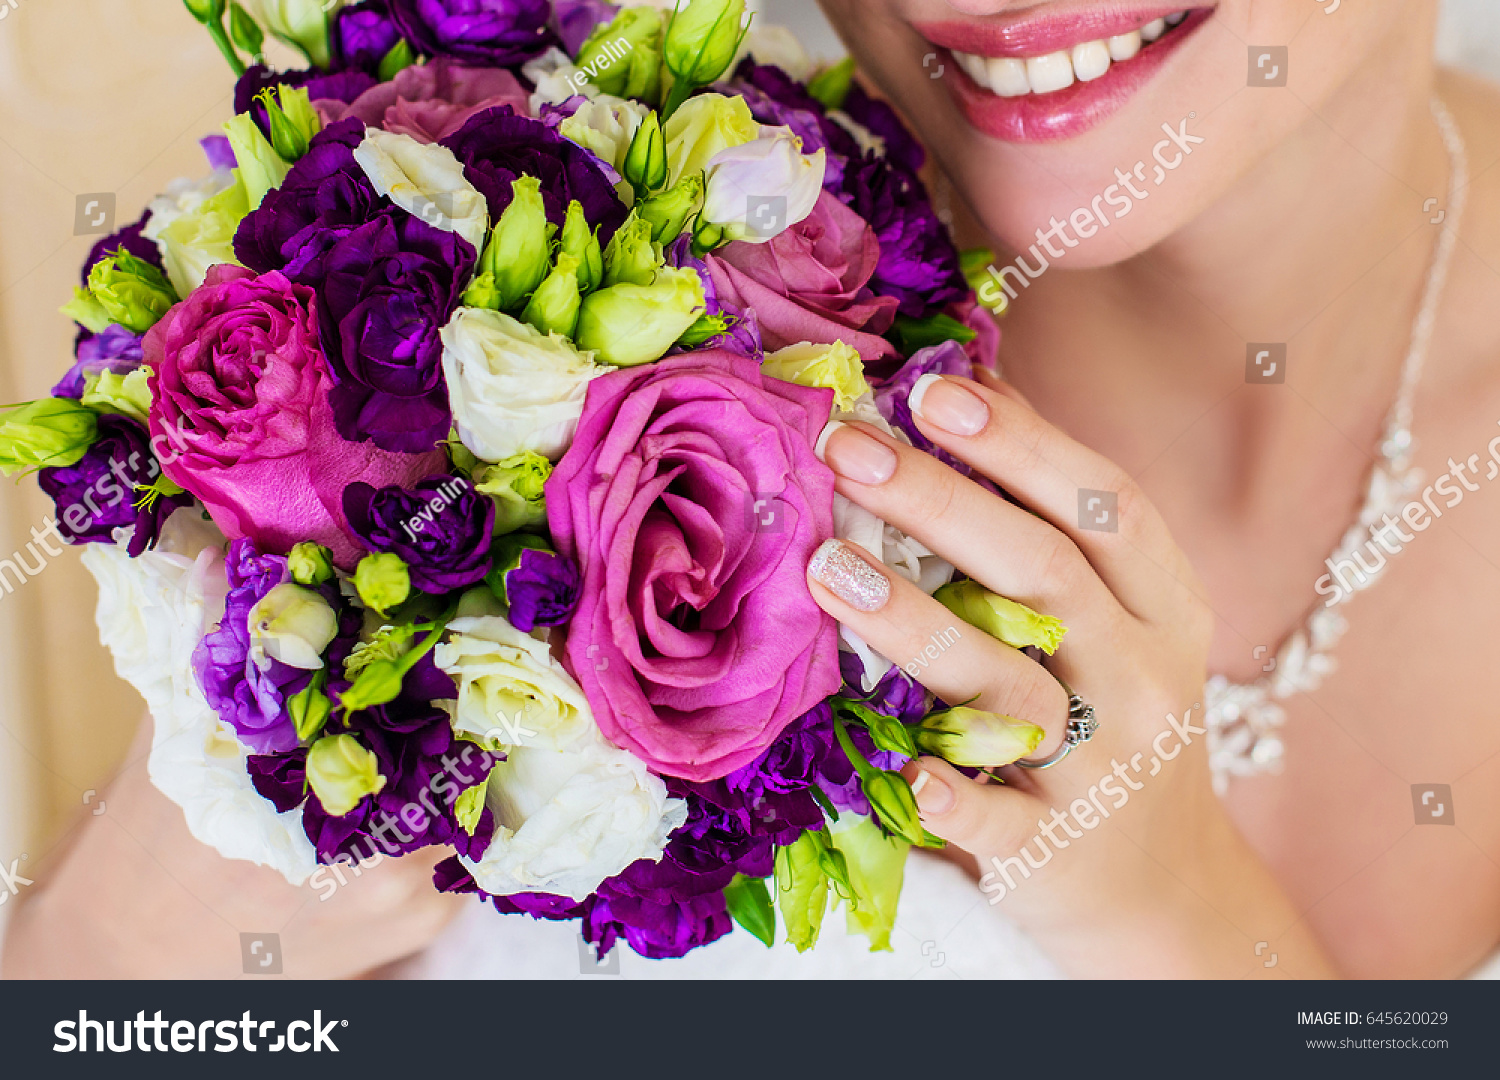 Girl smiles beautiful smile white teeth stock photo royalty free girl smiles a beautiful smile with white teeth bouquet of flowers as a gift for izmirmasajfo Image collections